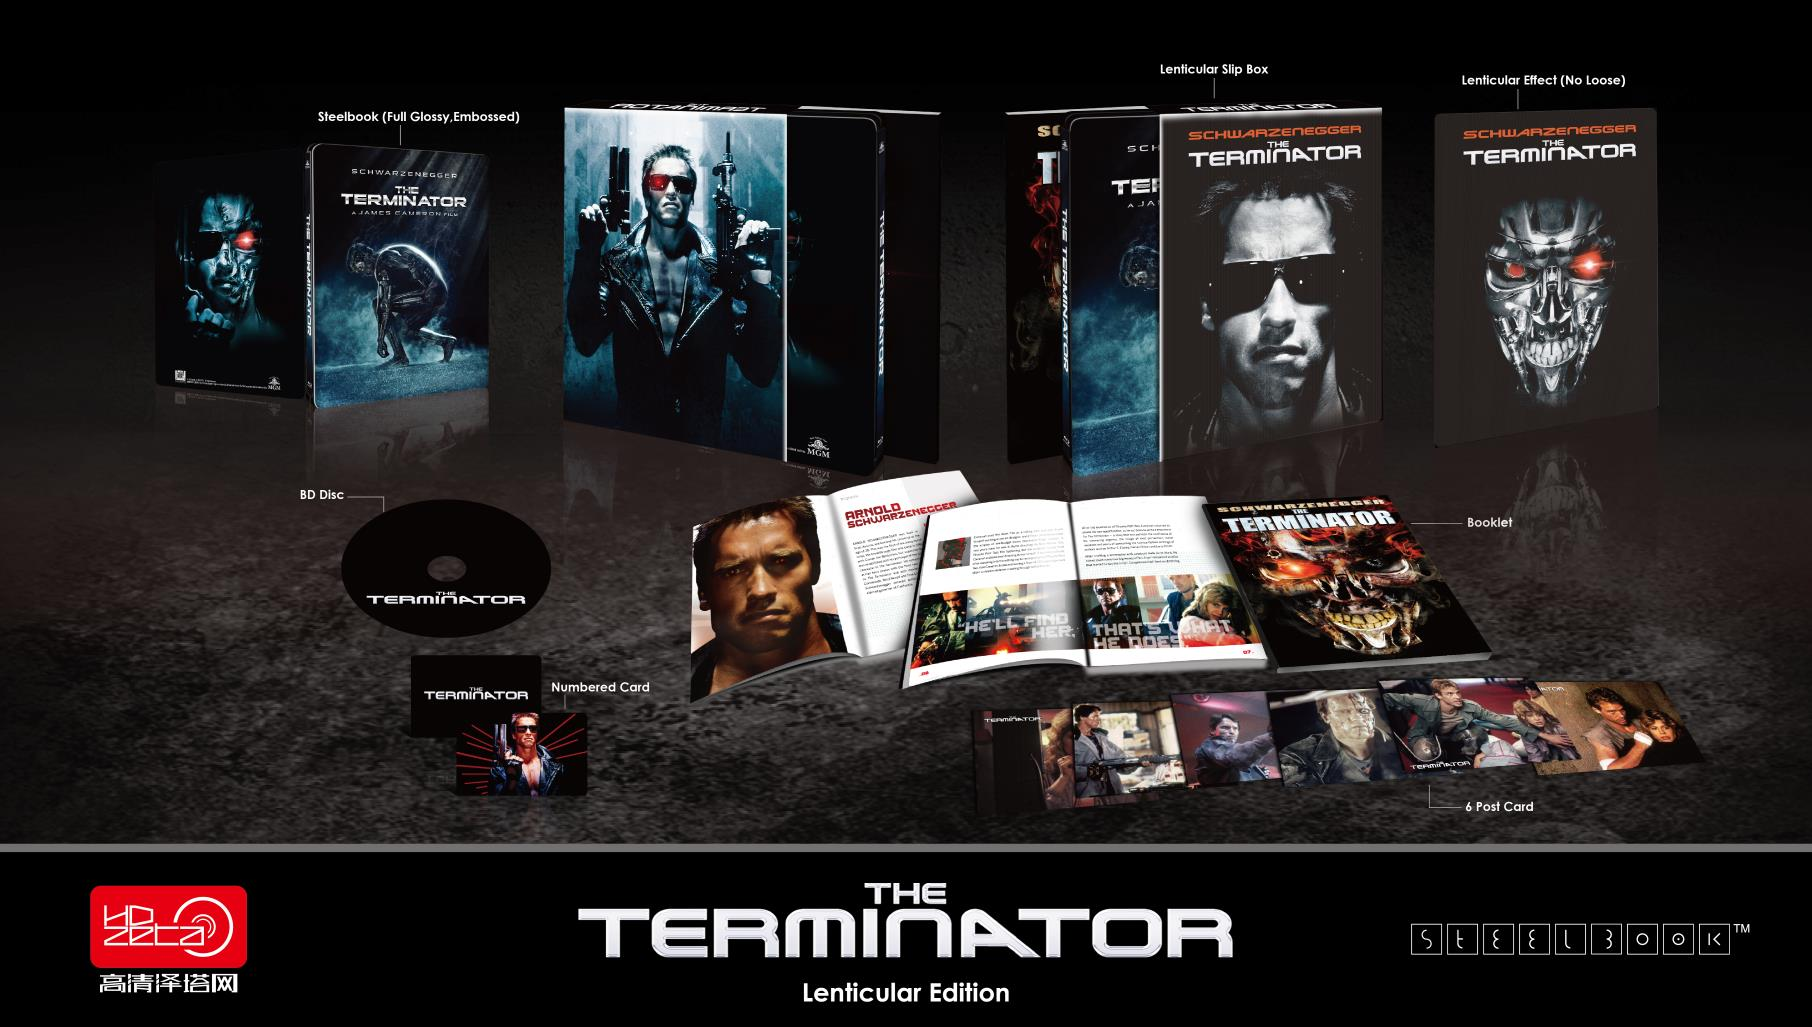 The Terminator HDzeta Exclusive steelbook Lenticular Edition